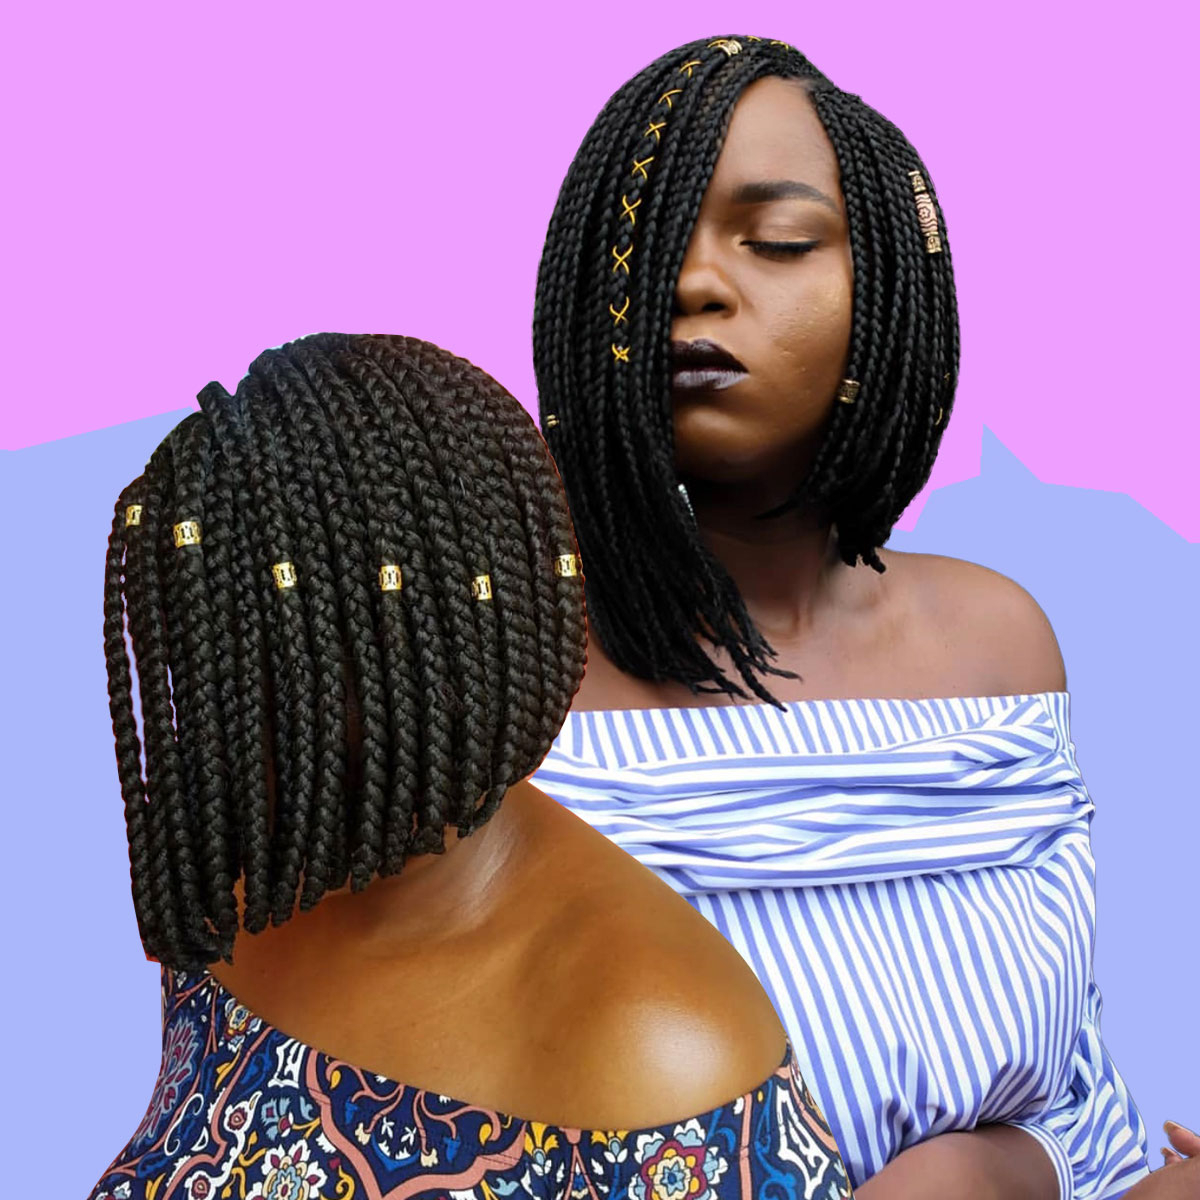 17 Beautiful Braided Bobs From Instagram You Need To Give A Try Within Well Known Side Cornrows Braided Hairstyles (Gallery 18 of 20)